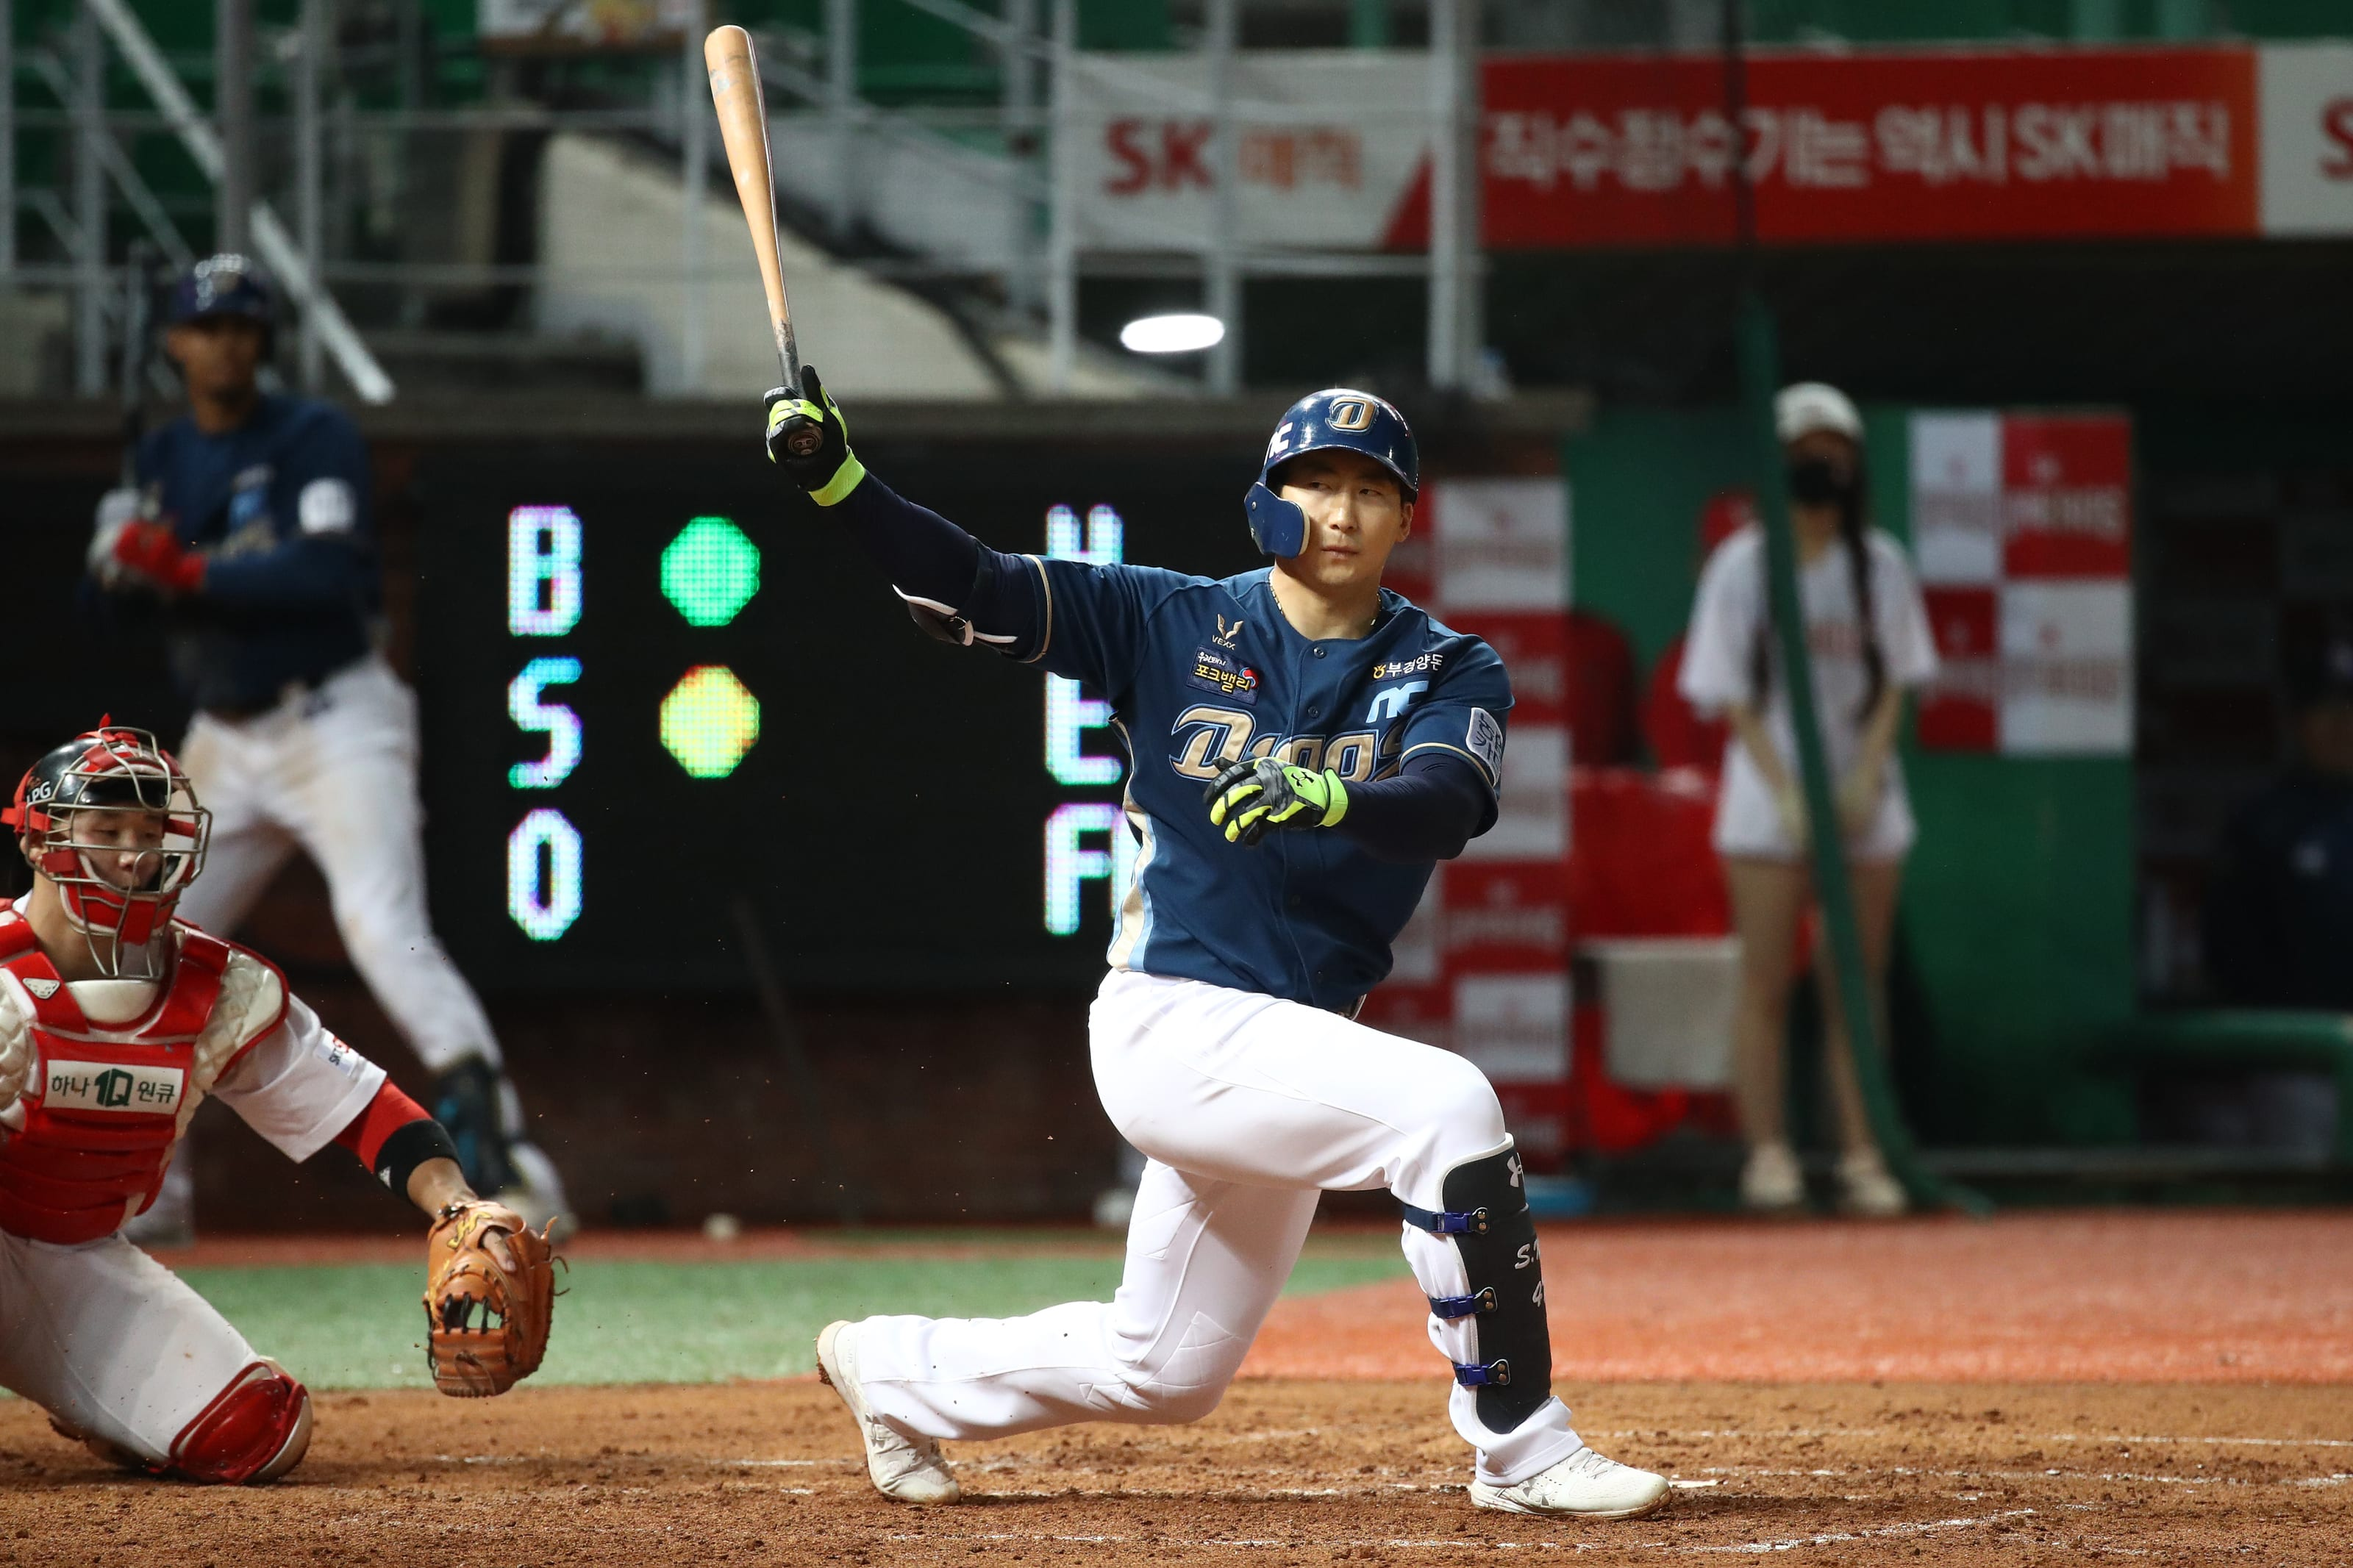 Outfielder Na Sung-bum #47 of NC Dinos bats in the bottom of the fifth inning during the KBO League game between NC Dinos and SK Wyverns.